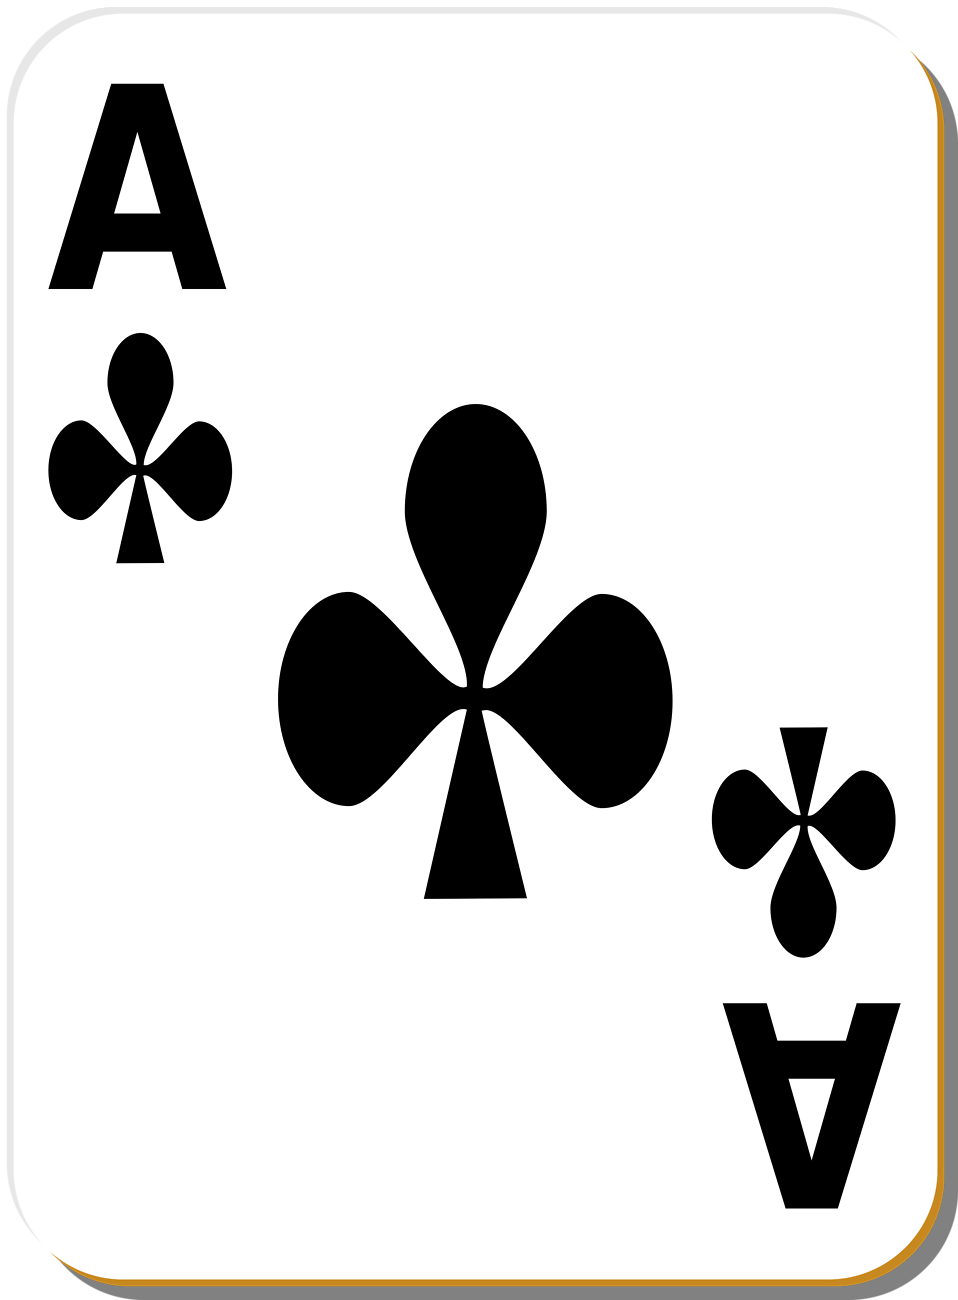 Aces cards clipartfest of. Ace playing card clipart